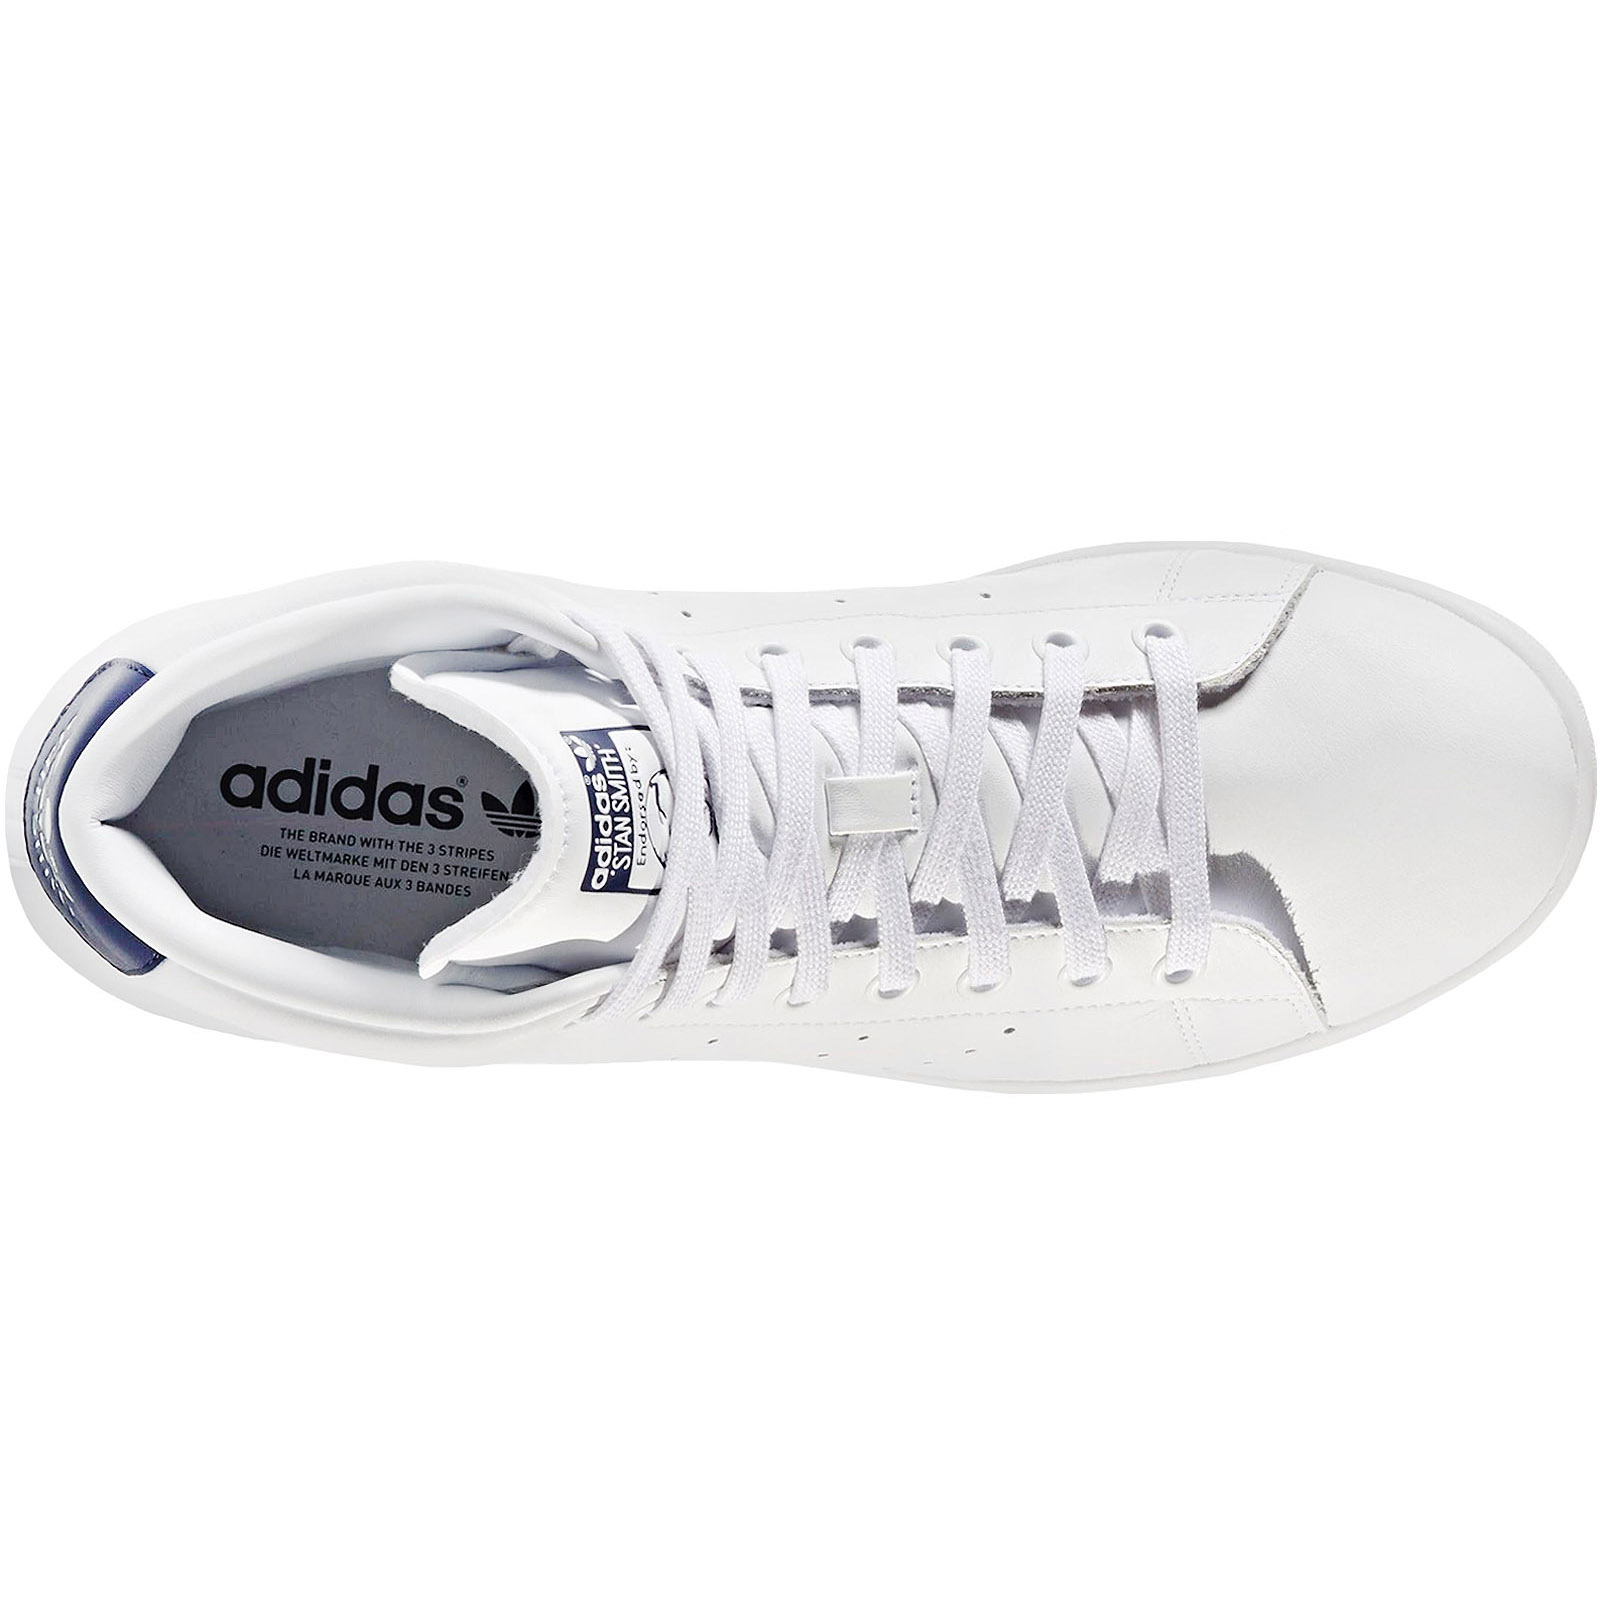 adidas-Originals-Mens-Stan-Smith-Mid-Rise-Casual-Lace-Up-Trainers-Sneakers-Shoes thumbnail 8